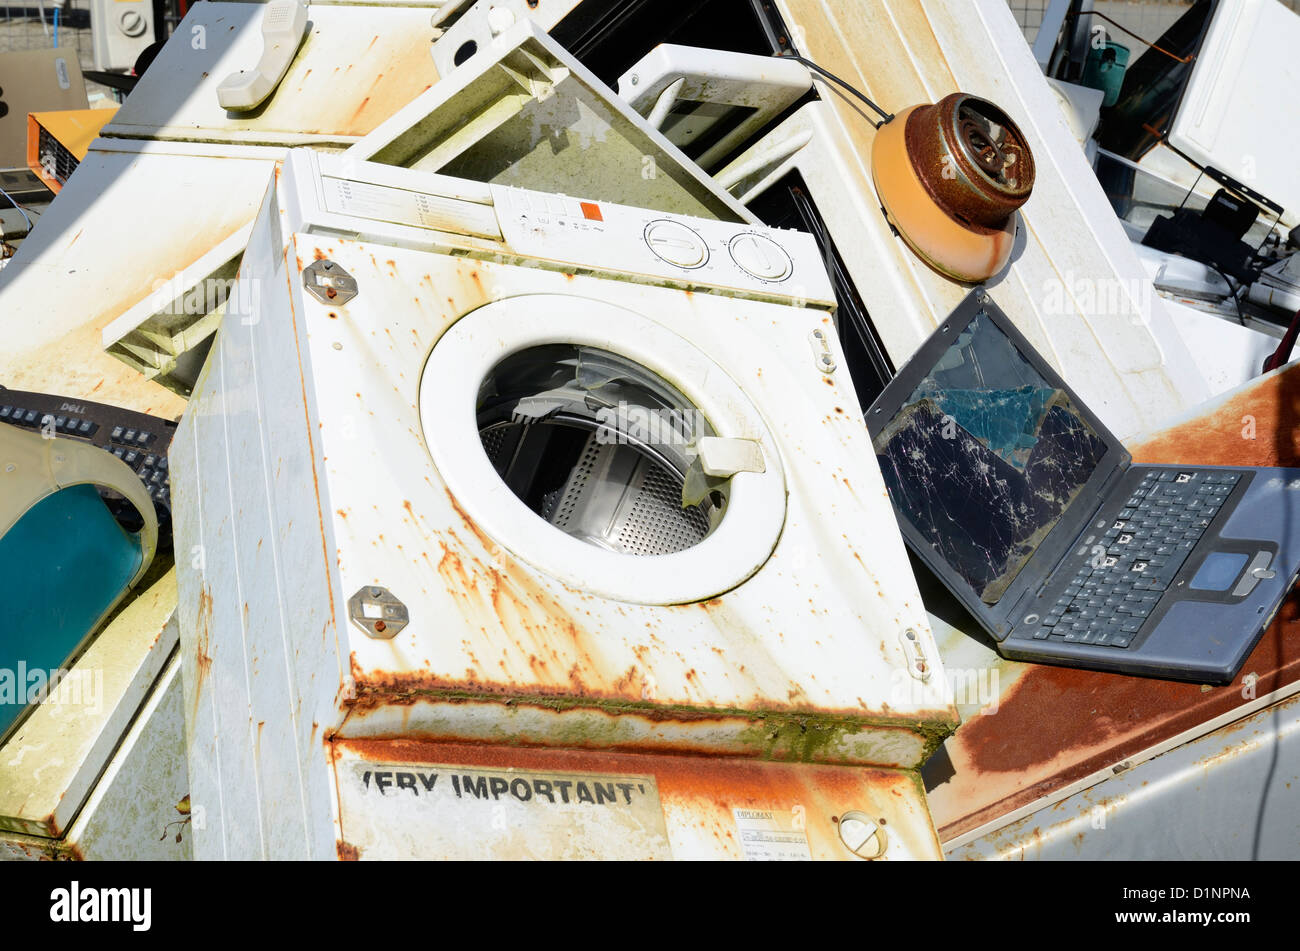 Old household electrical appliances at a recycling center Stock Photo